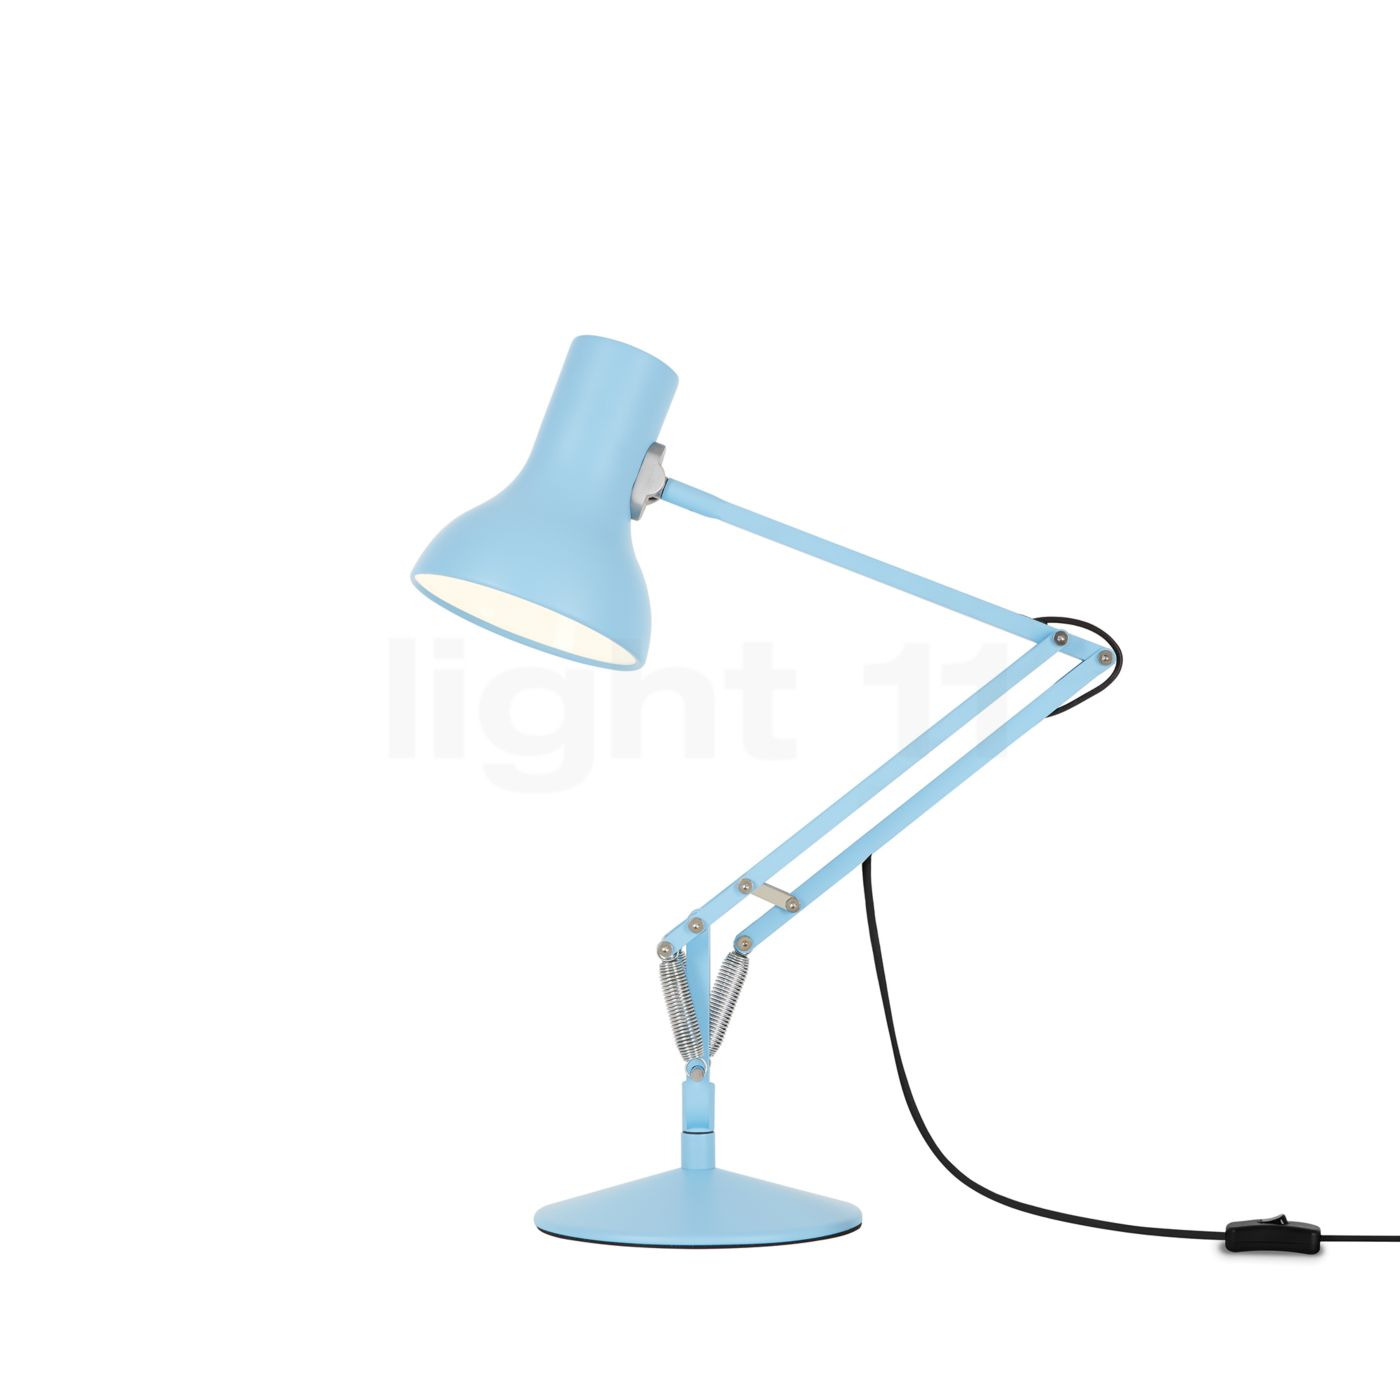 anglepoise c type 75 mini lampe de bureau bleu. Black Bedroom Furniture Sets. Home Design Ideas